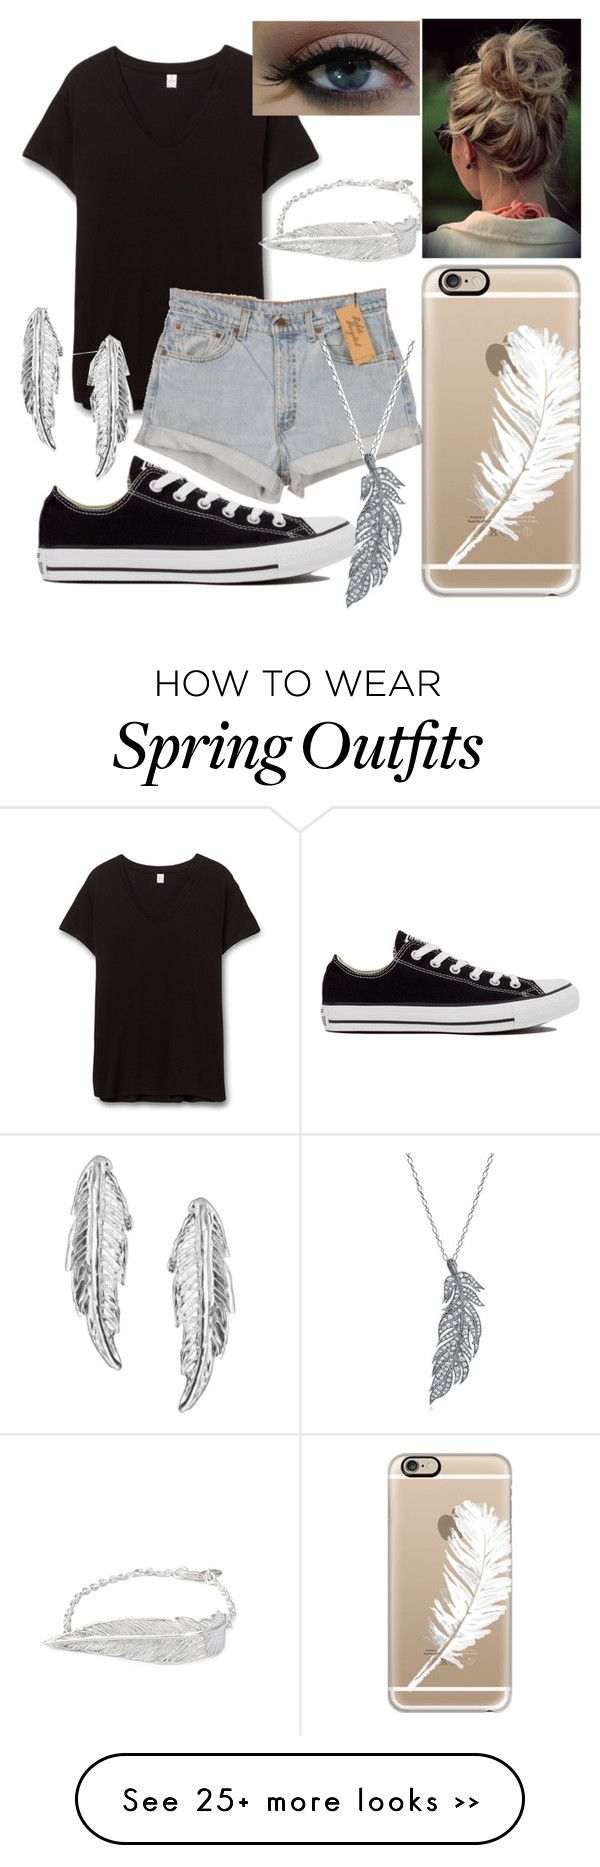 """""""School outfit"""" by gabriela-27-99-11 on Polyvore featuring Levi's, Converse, Stone Paris, LeiVanKash and Casetify"""